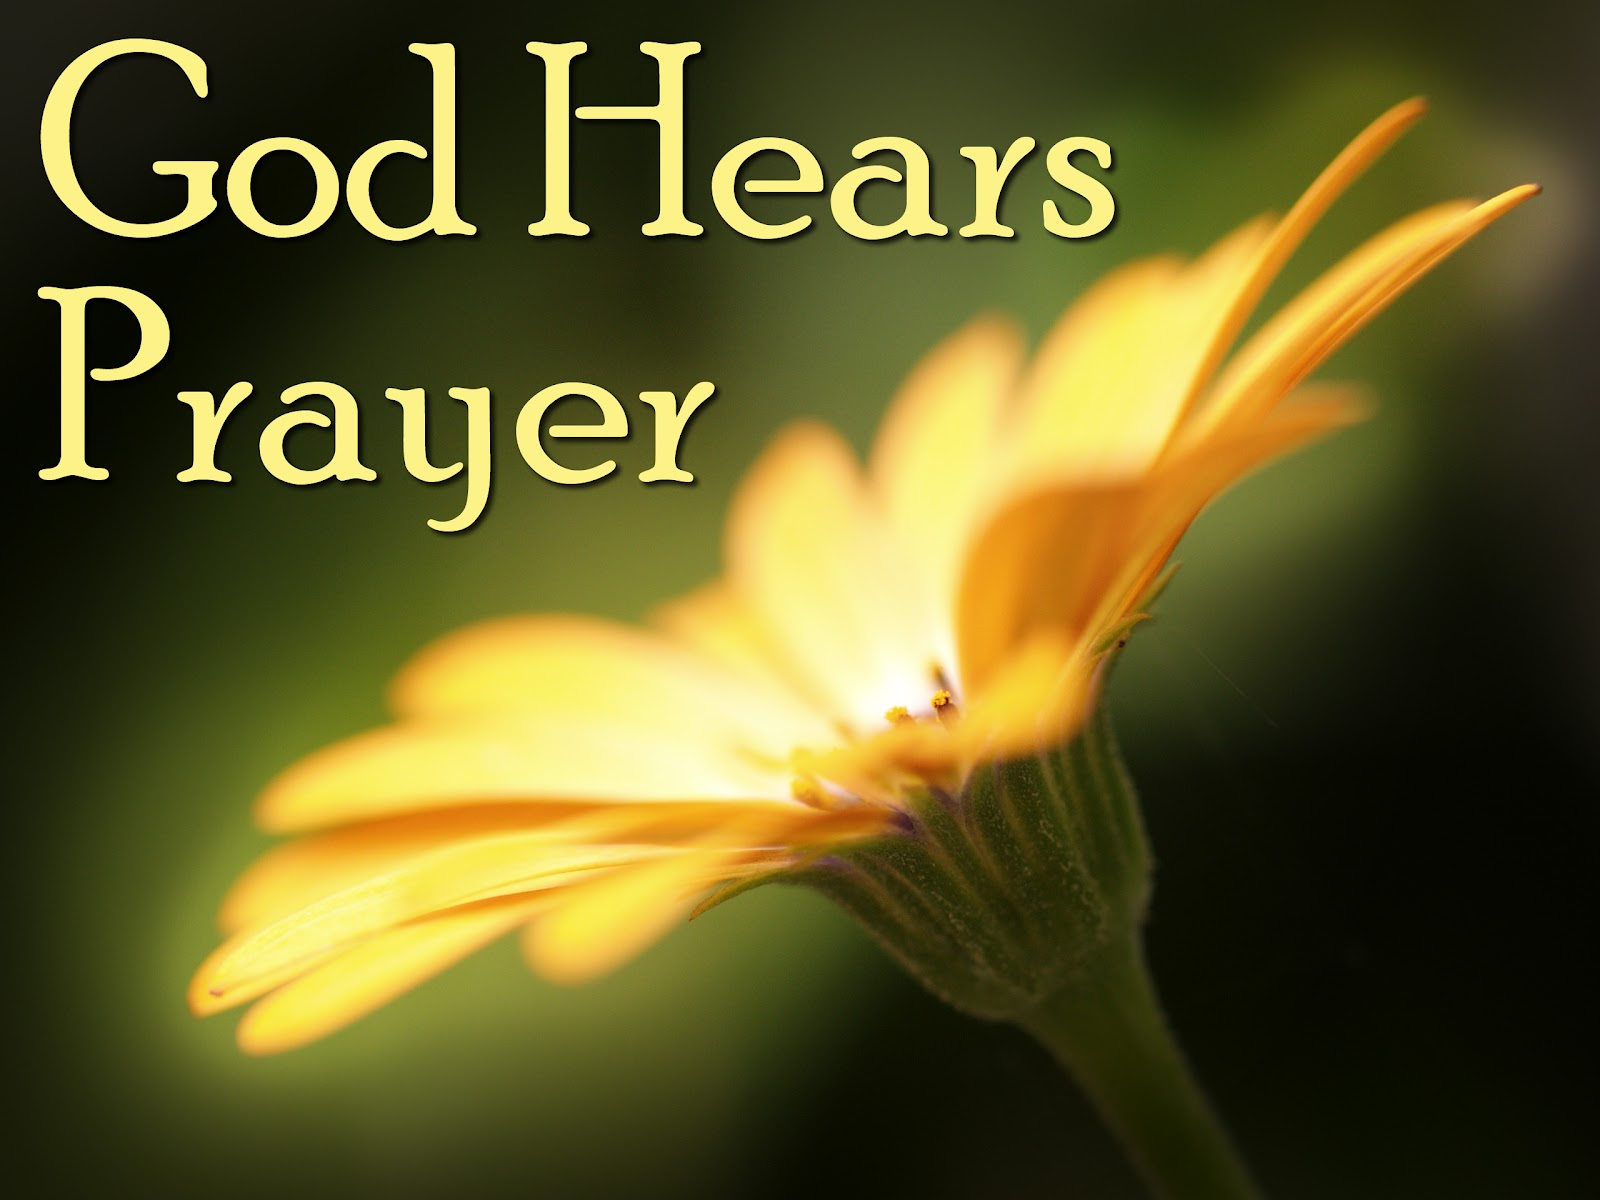 what is a prayer Prayer definition is - an address (such as a petition) to god or a god in word or thought how to use prayer in a sentence an address (such as a petition) to god or.